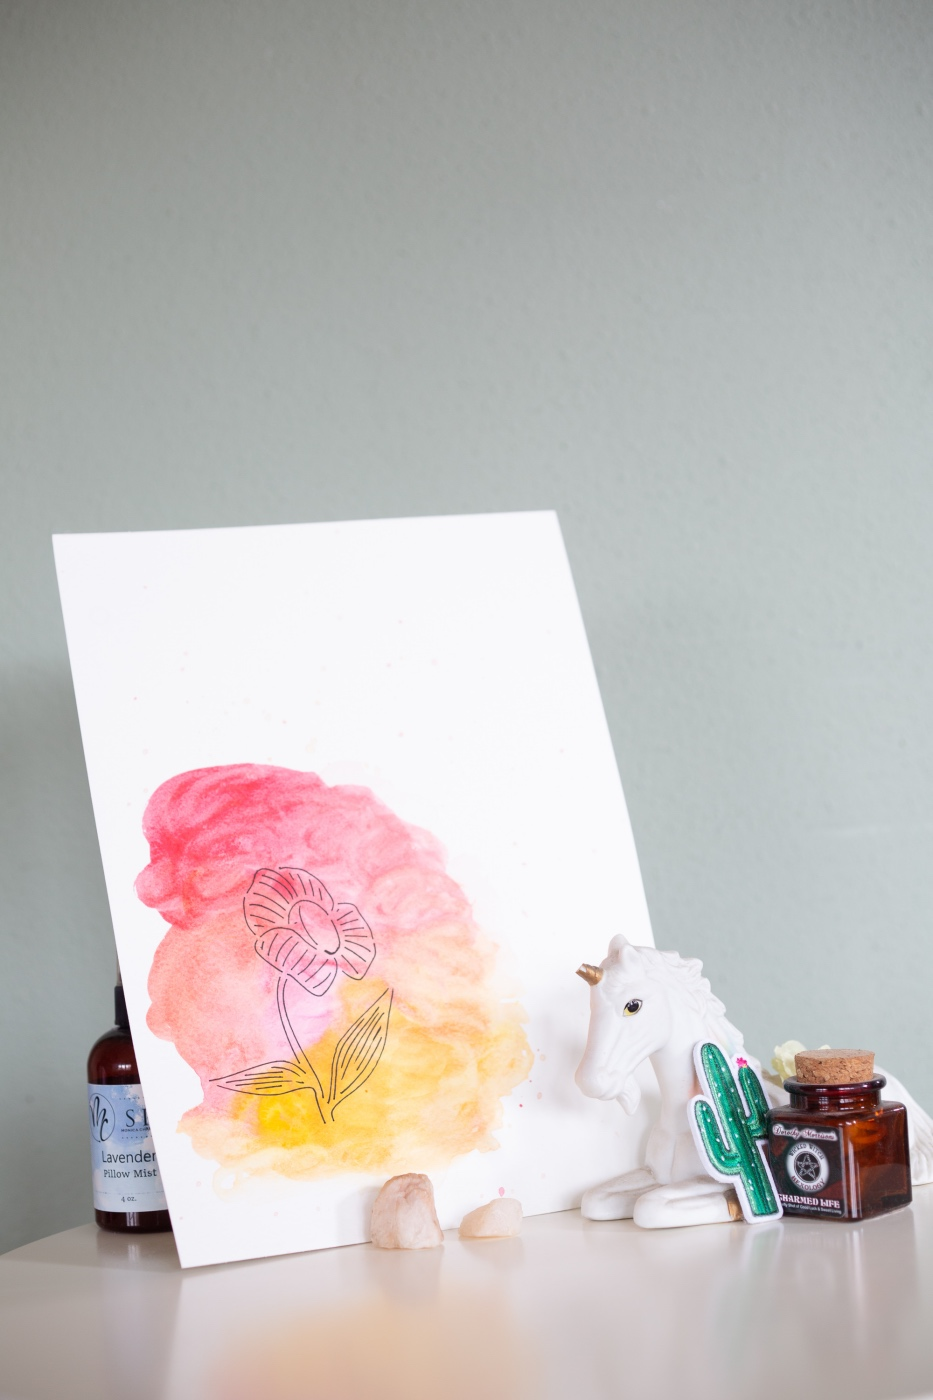 easy watercolor stencil painting tutorial on display